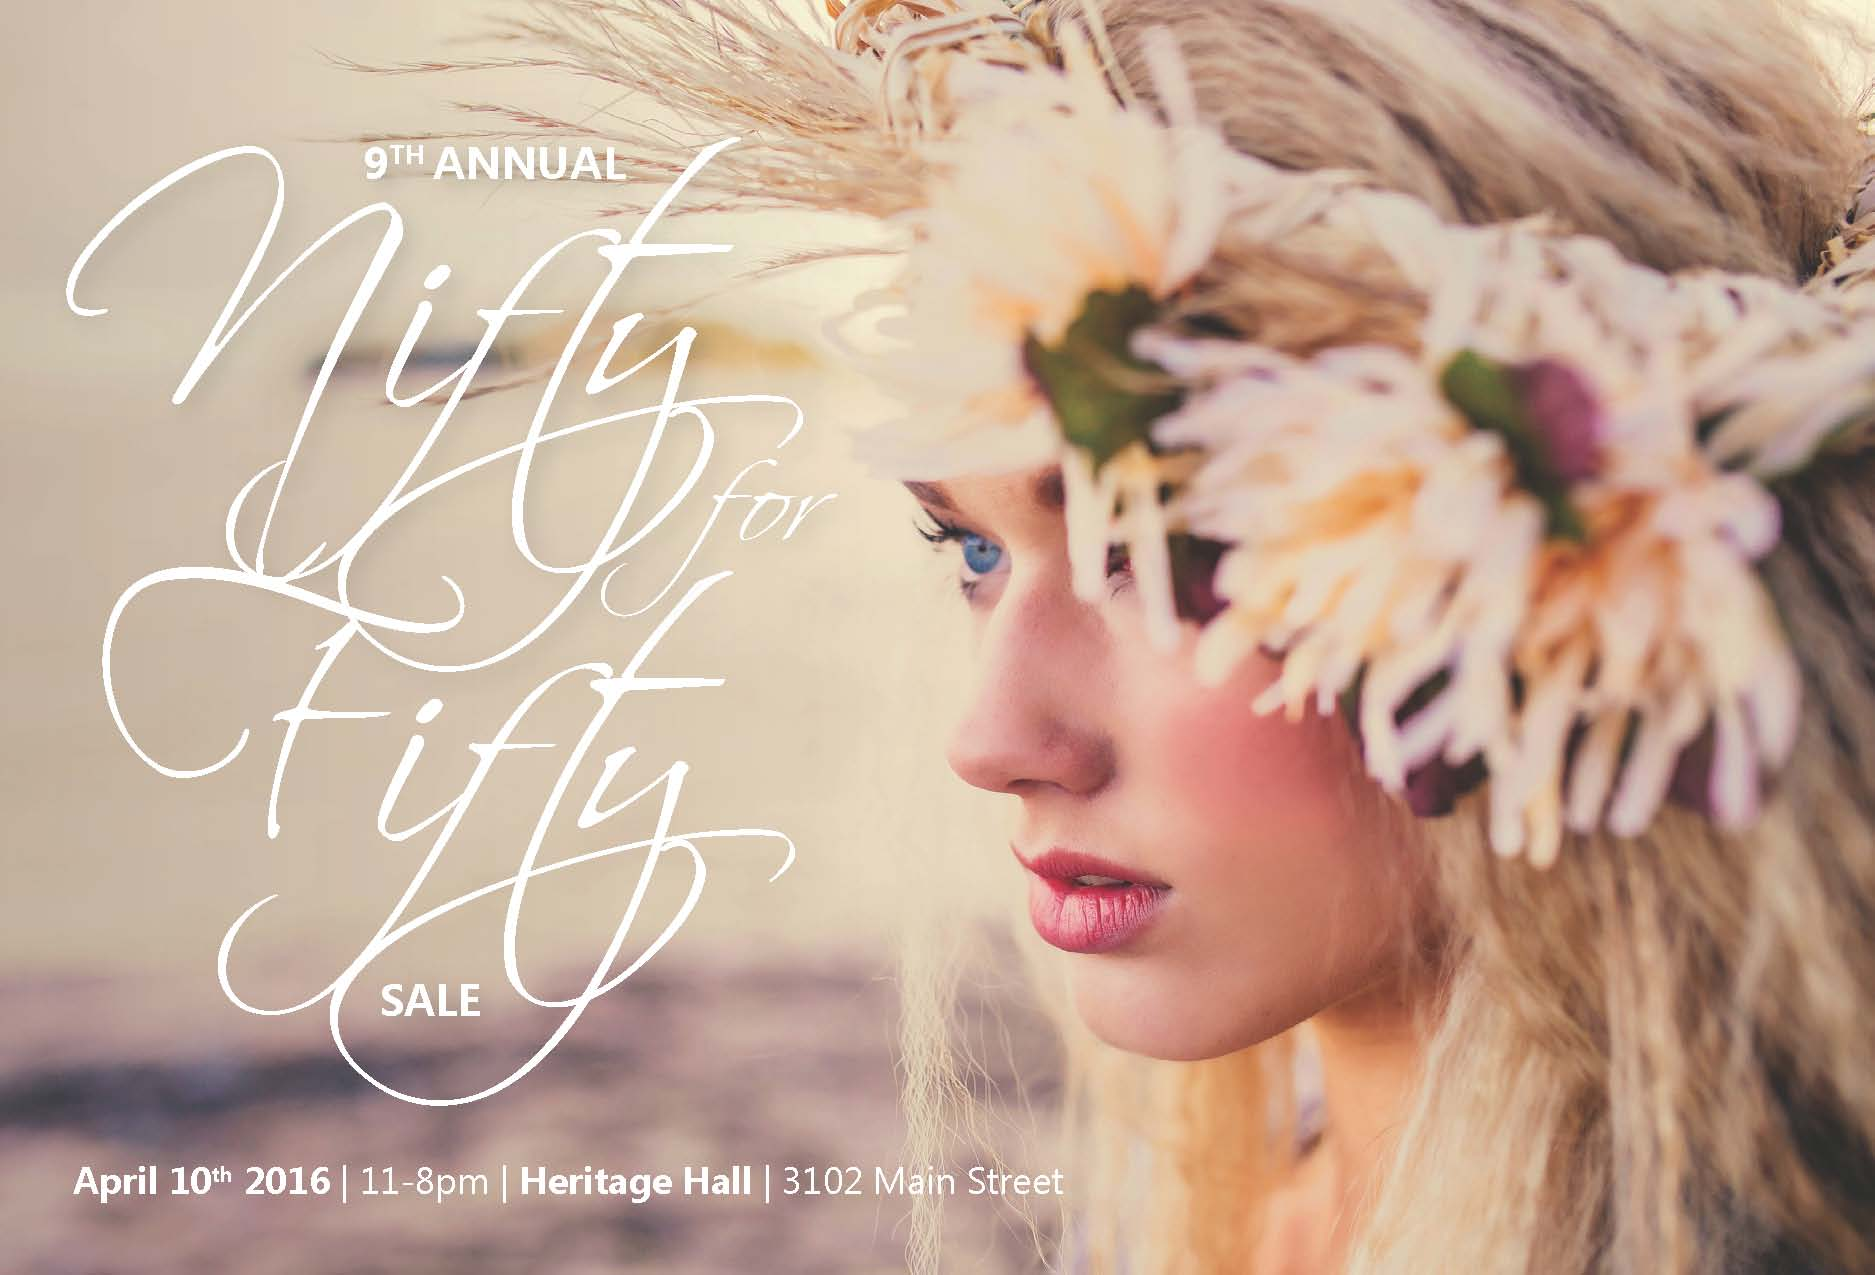 9th Annual Nifty for Fifty Indie Designer Blowout Sale on Sunday, April 10th at Heritage Hall